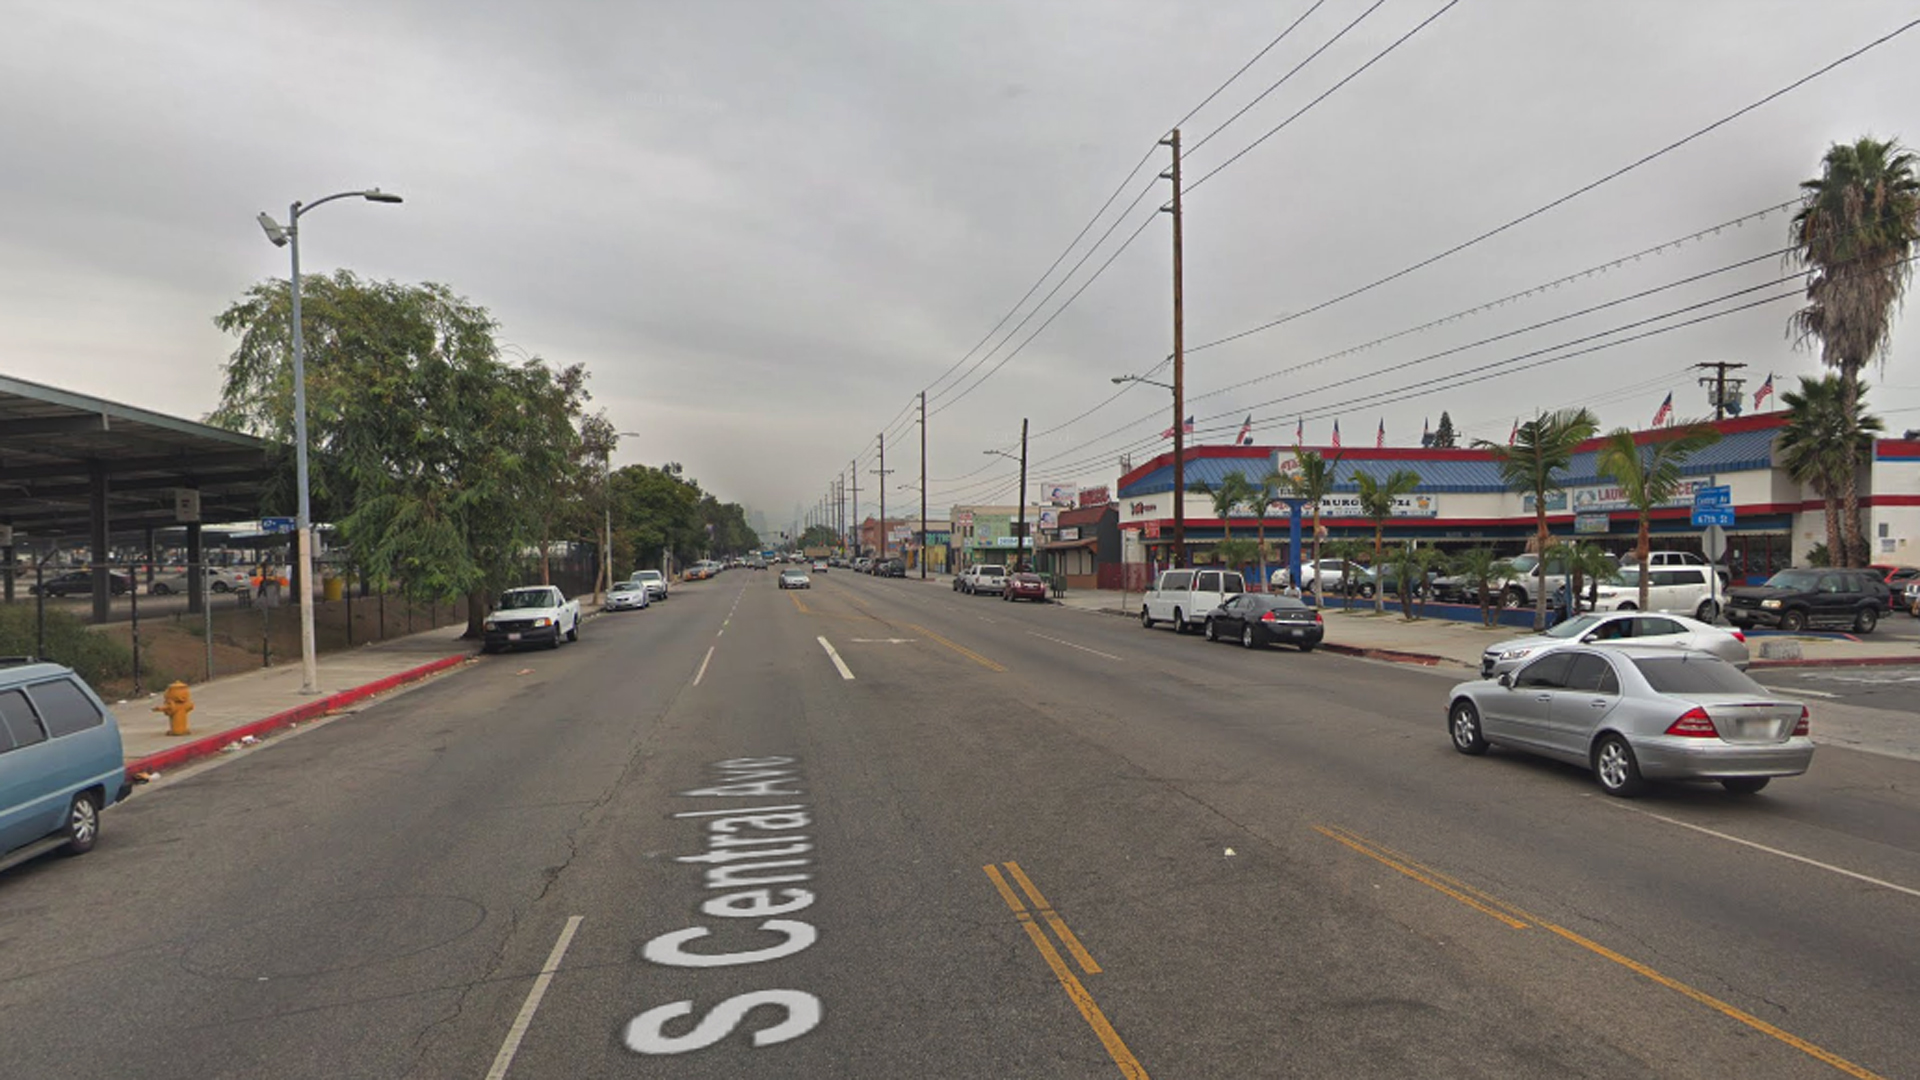 The intersection of Central Avenue and 67th Street in the Florence neighborhood of South Los Angeles, as viewed in a Google Street View image.